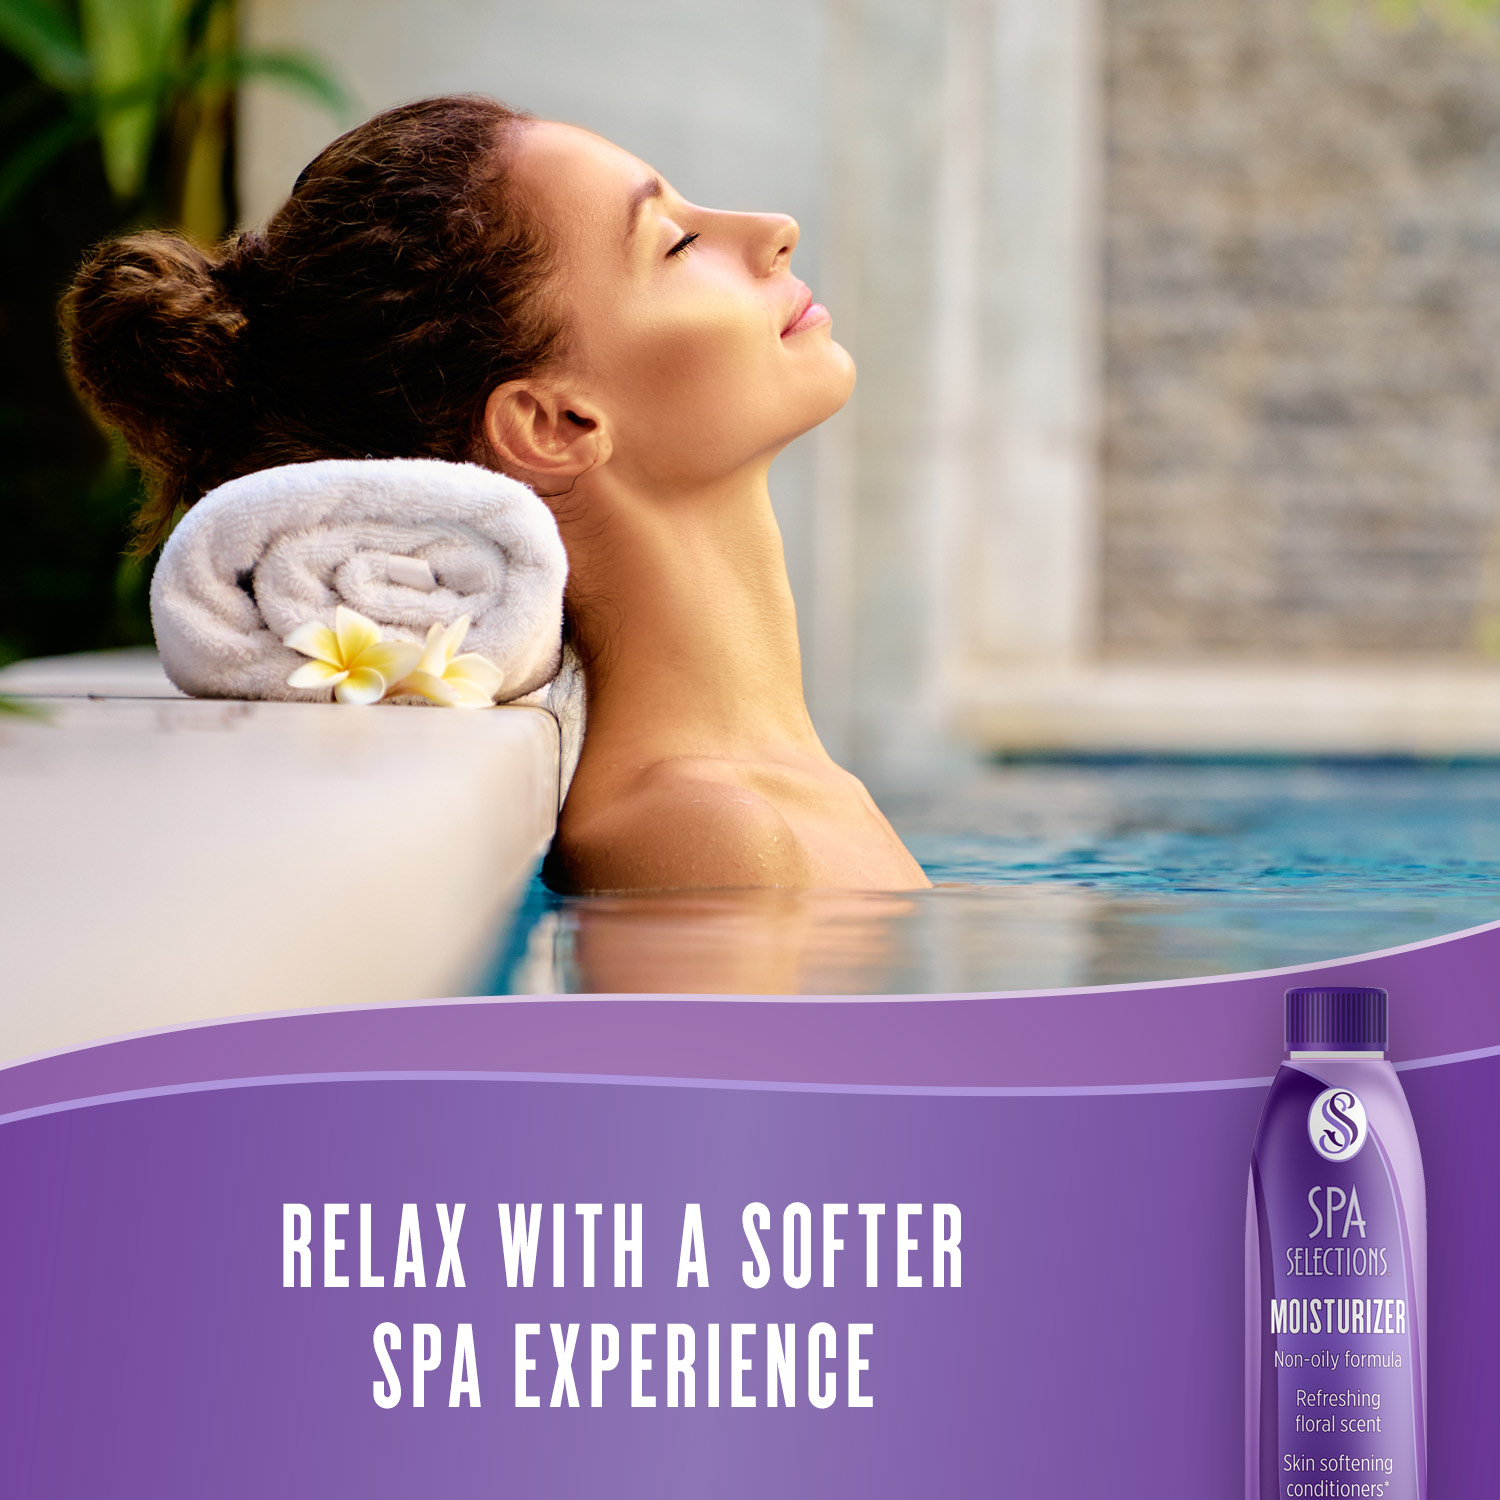 Relax with a softer spa experience with Spa Selections Moisturizer.